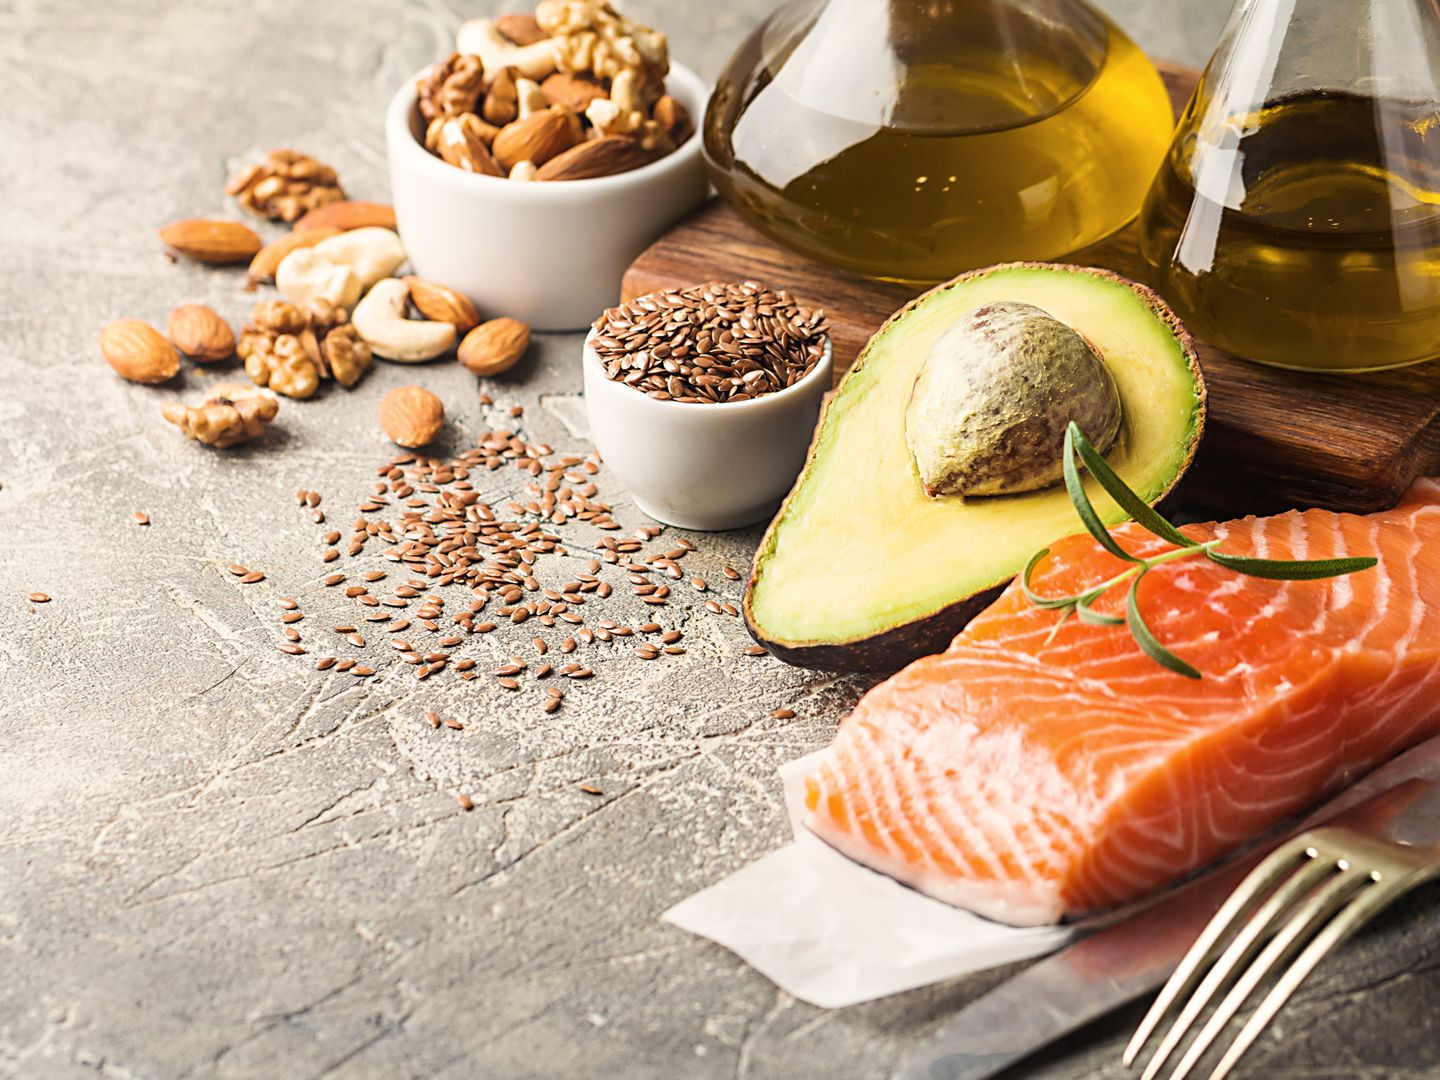 Is your consumption of omega-6 and omega-3 fatty acids in balance? Click here to learn more about th